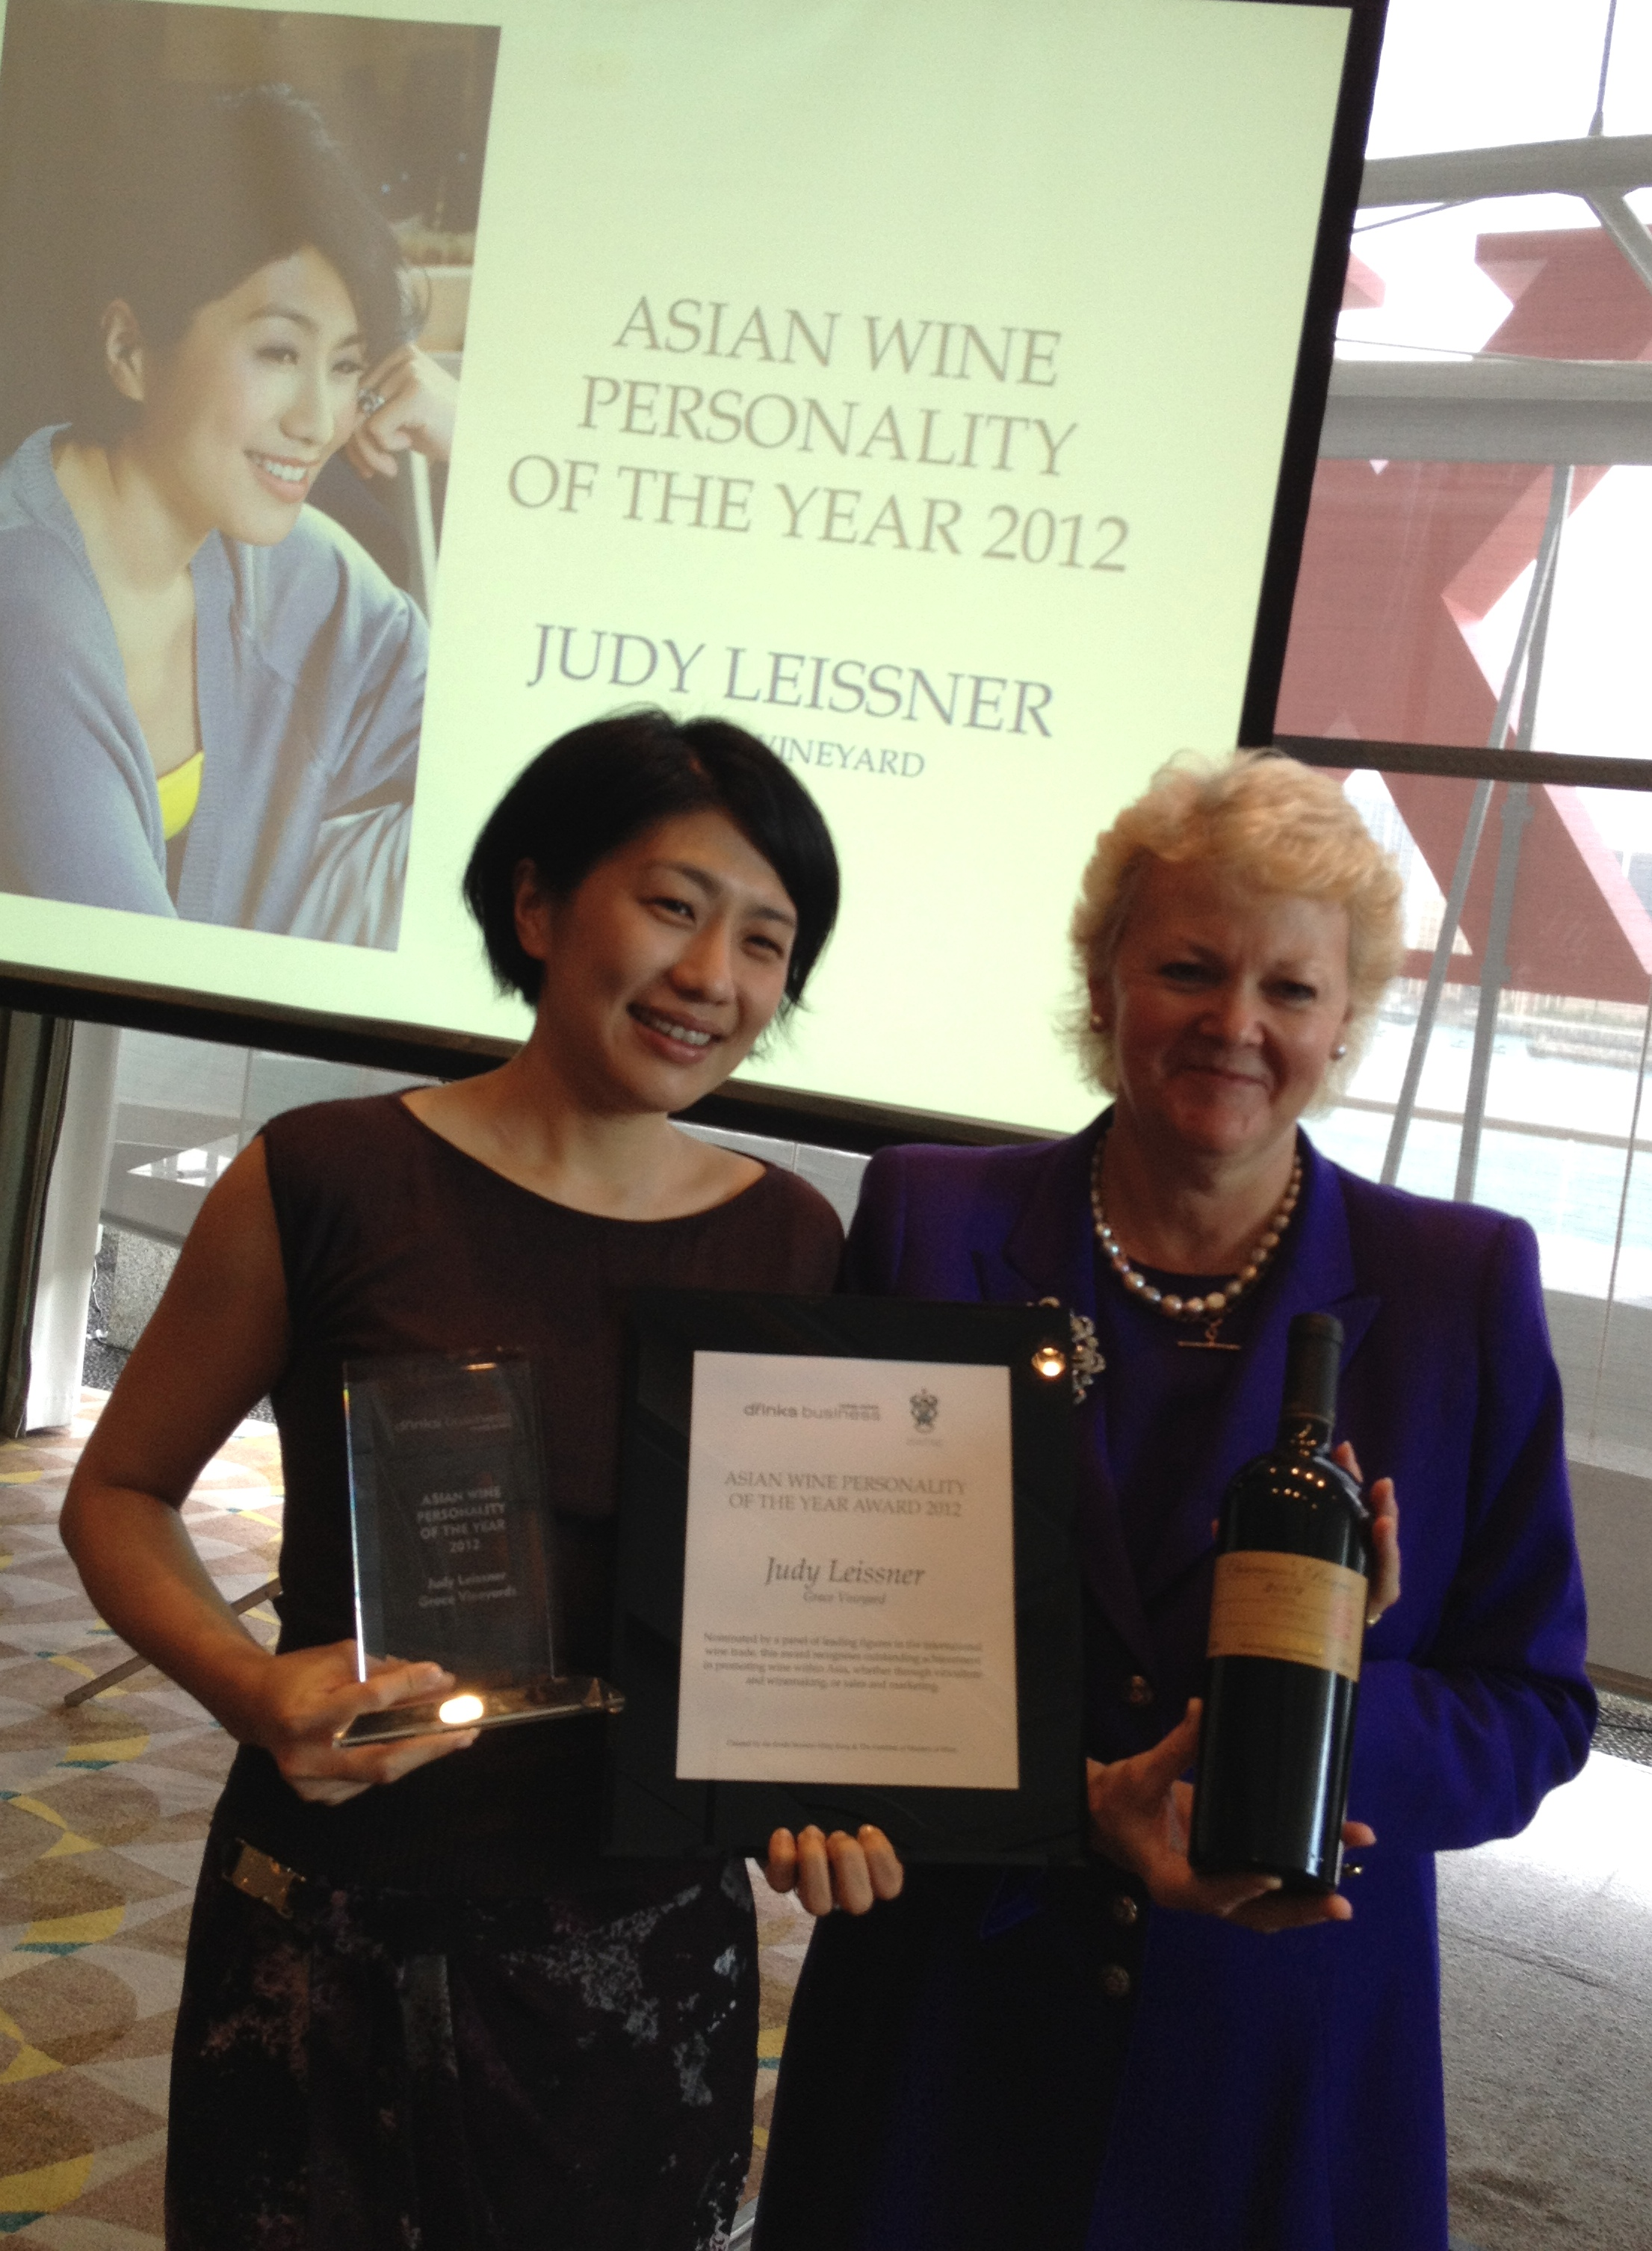 2012亞洲葡萄酒年度人物大獎 Asian Wine Personality of the Year